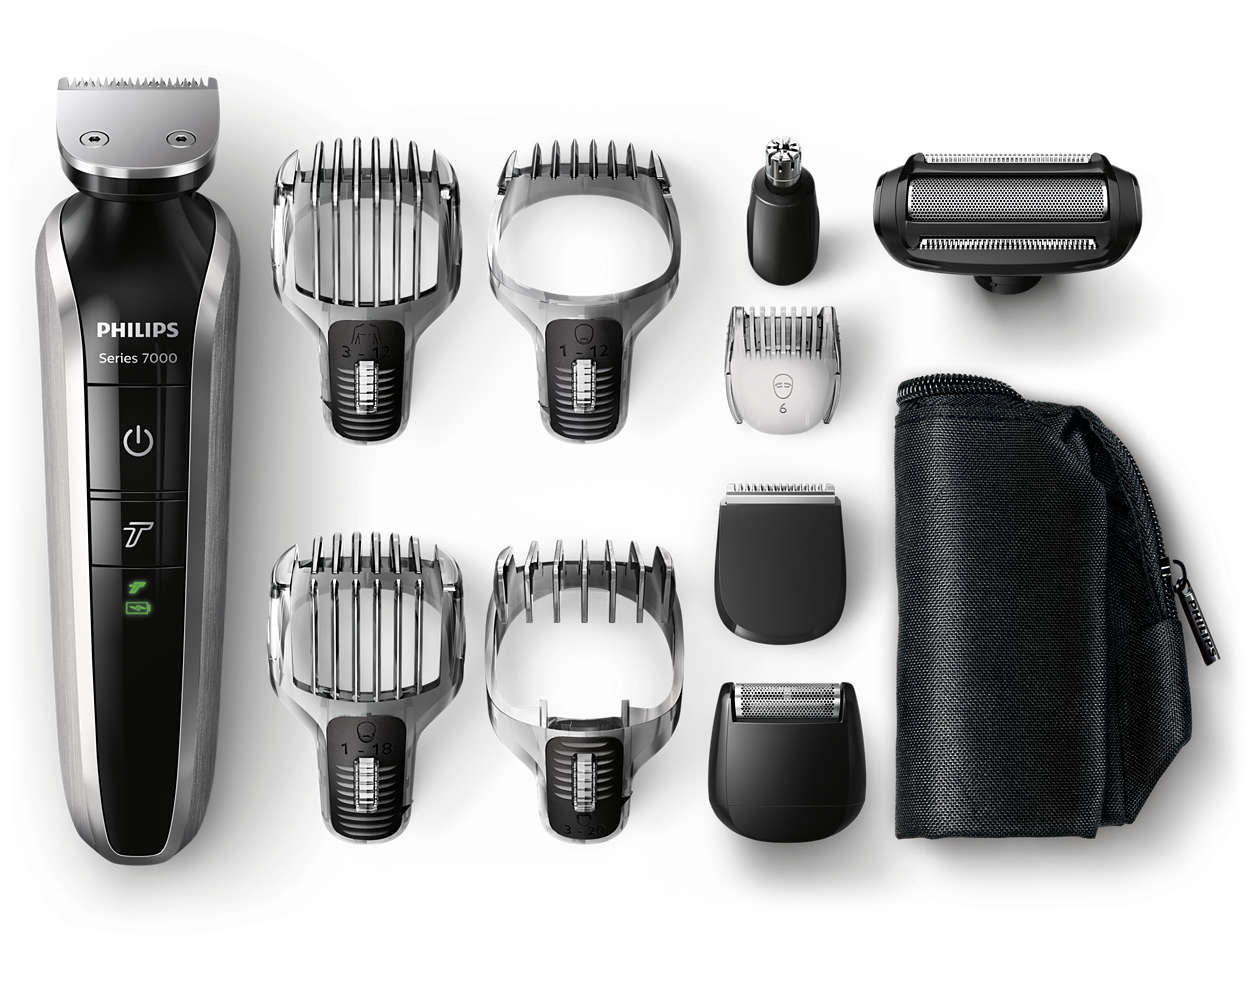 All-in-one beard, hair & body trimmer